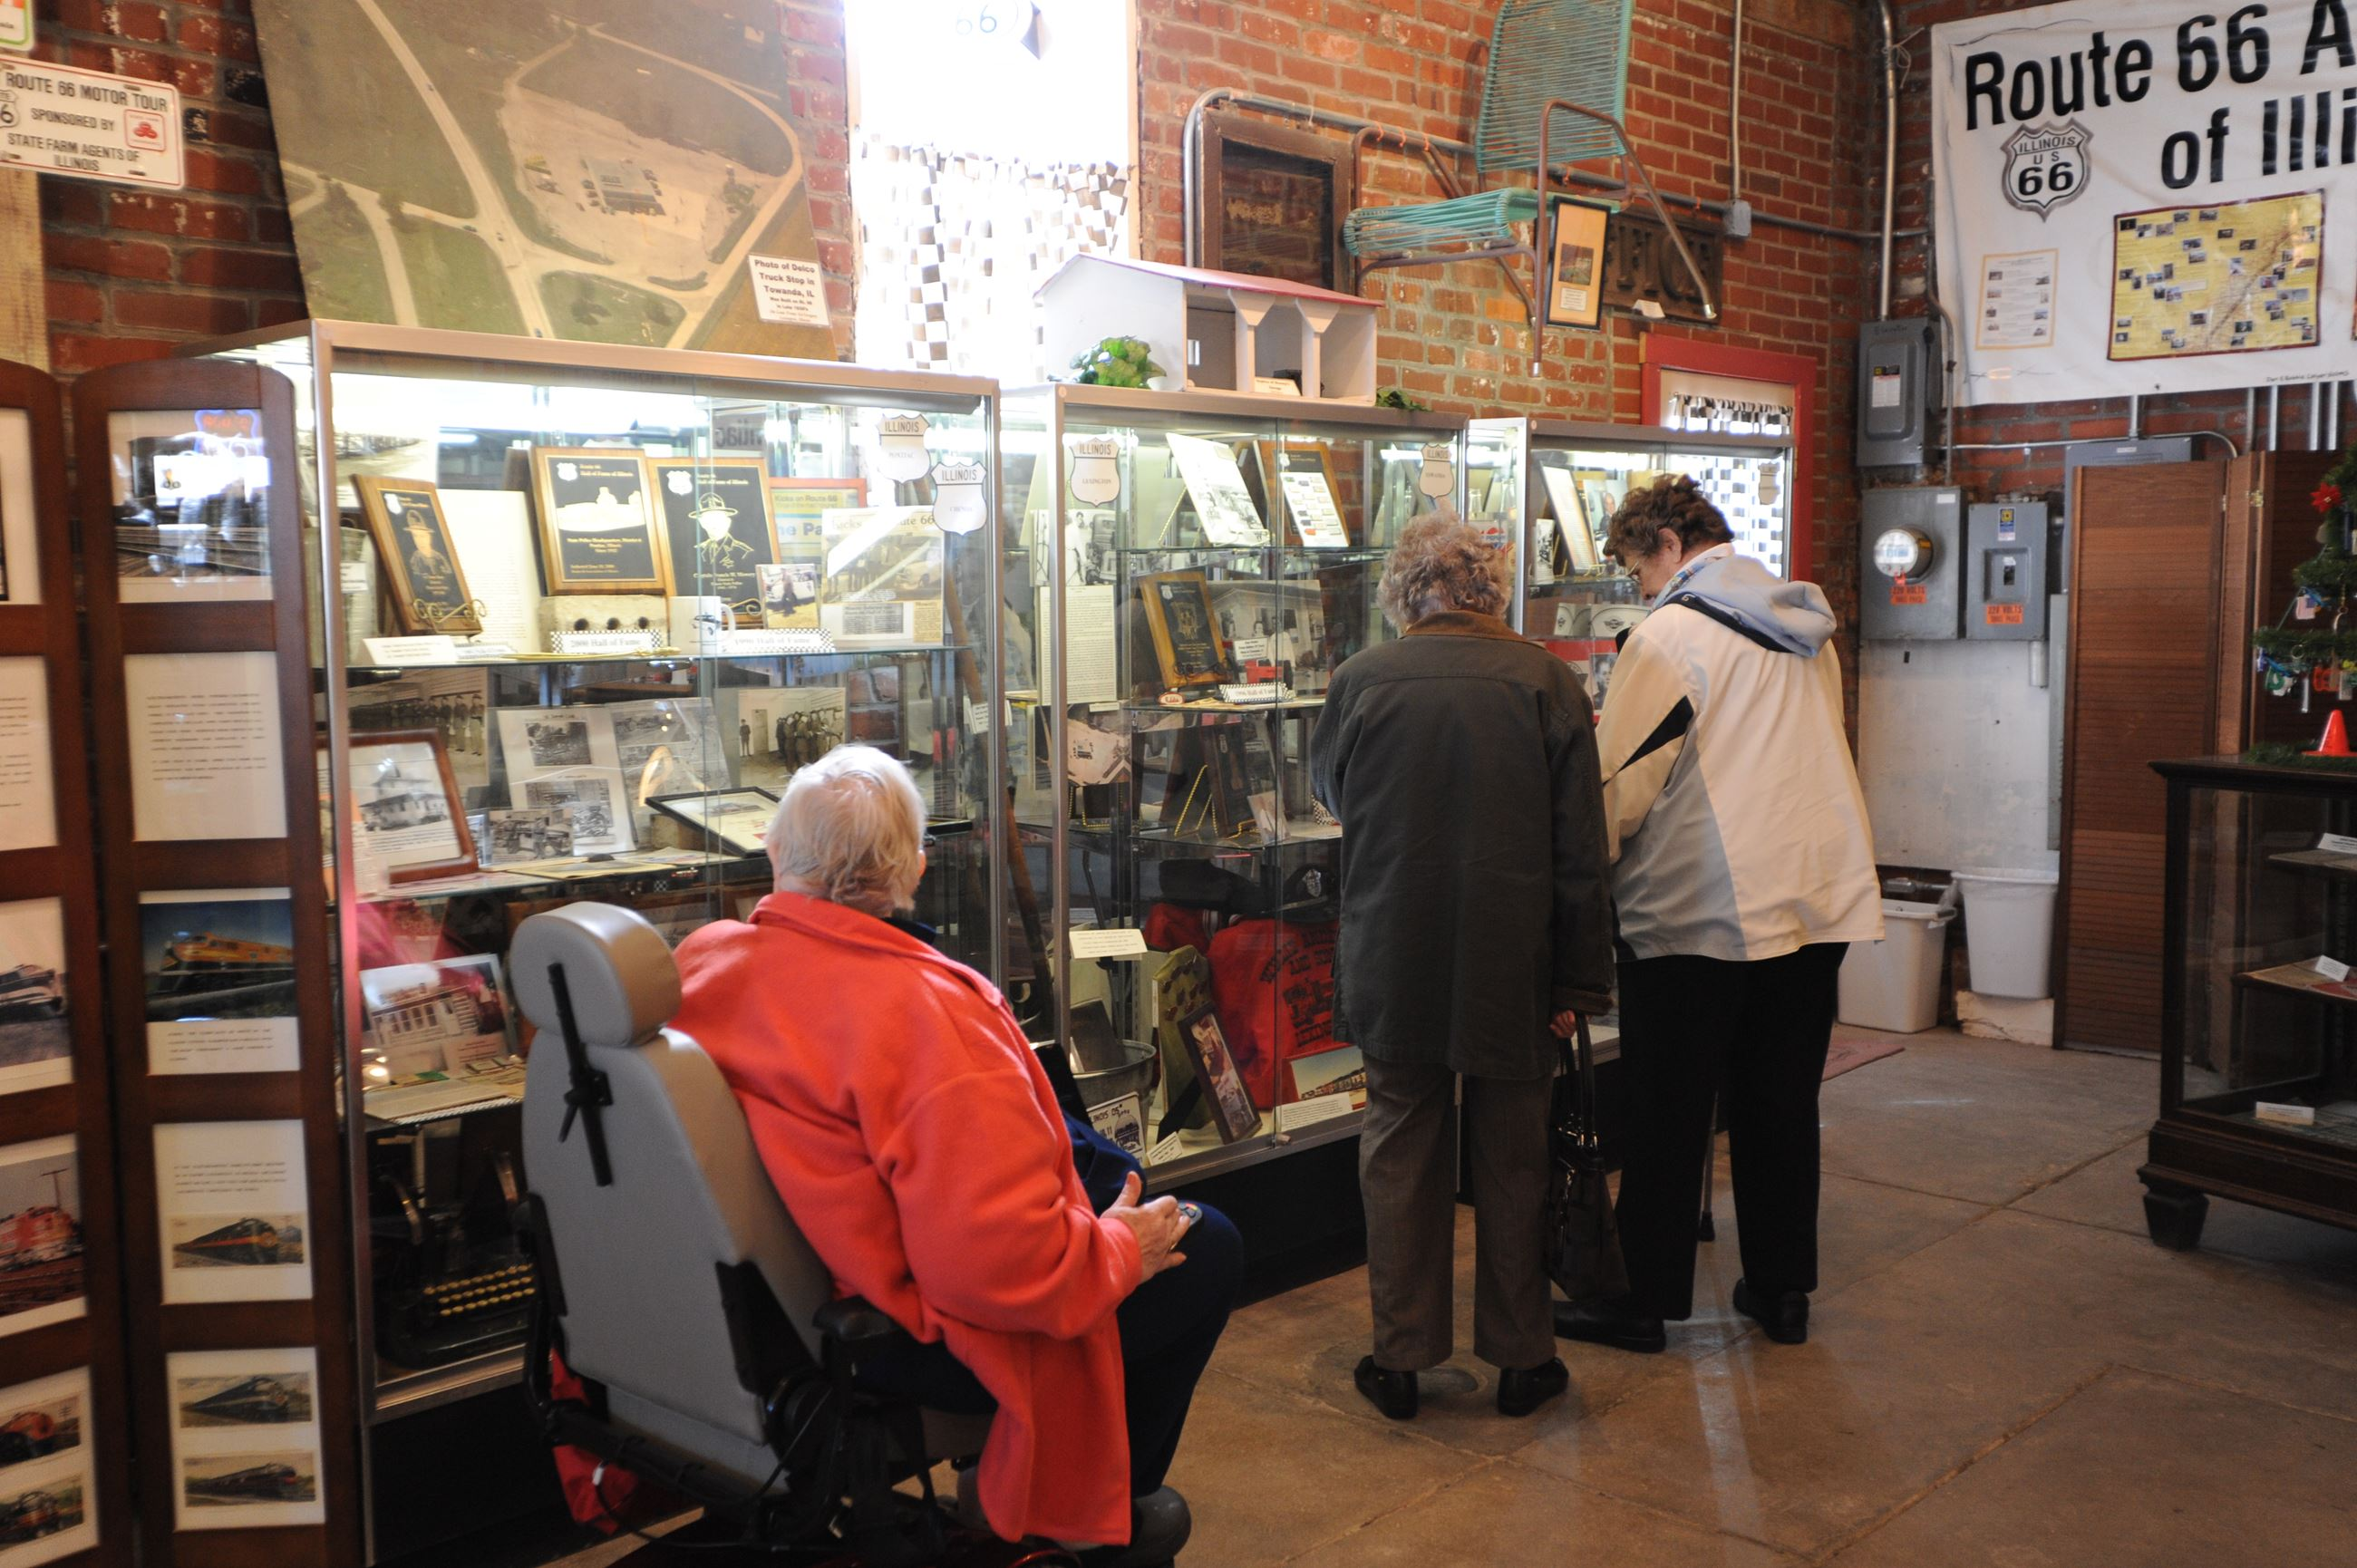 Visitors explore displays at Route 66 Museum